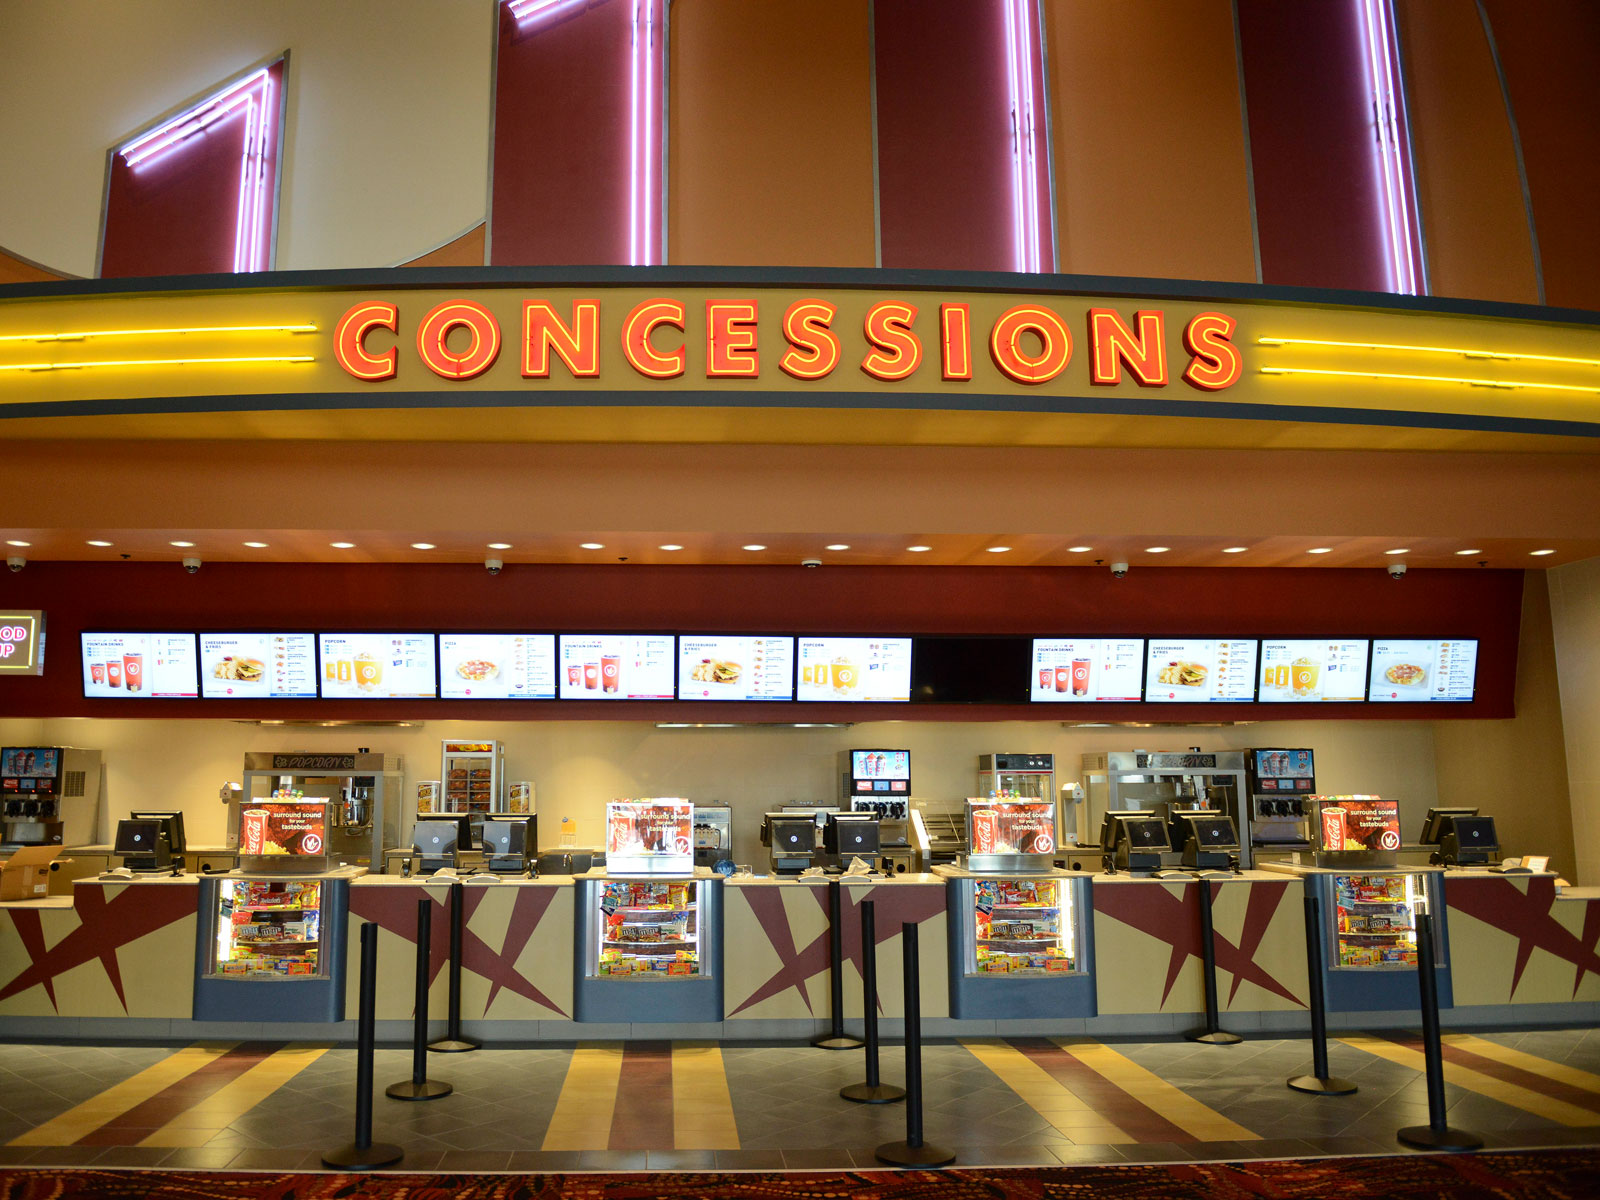 Movie Theater Chains Face Antitrust Investigation by U.S